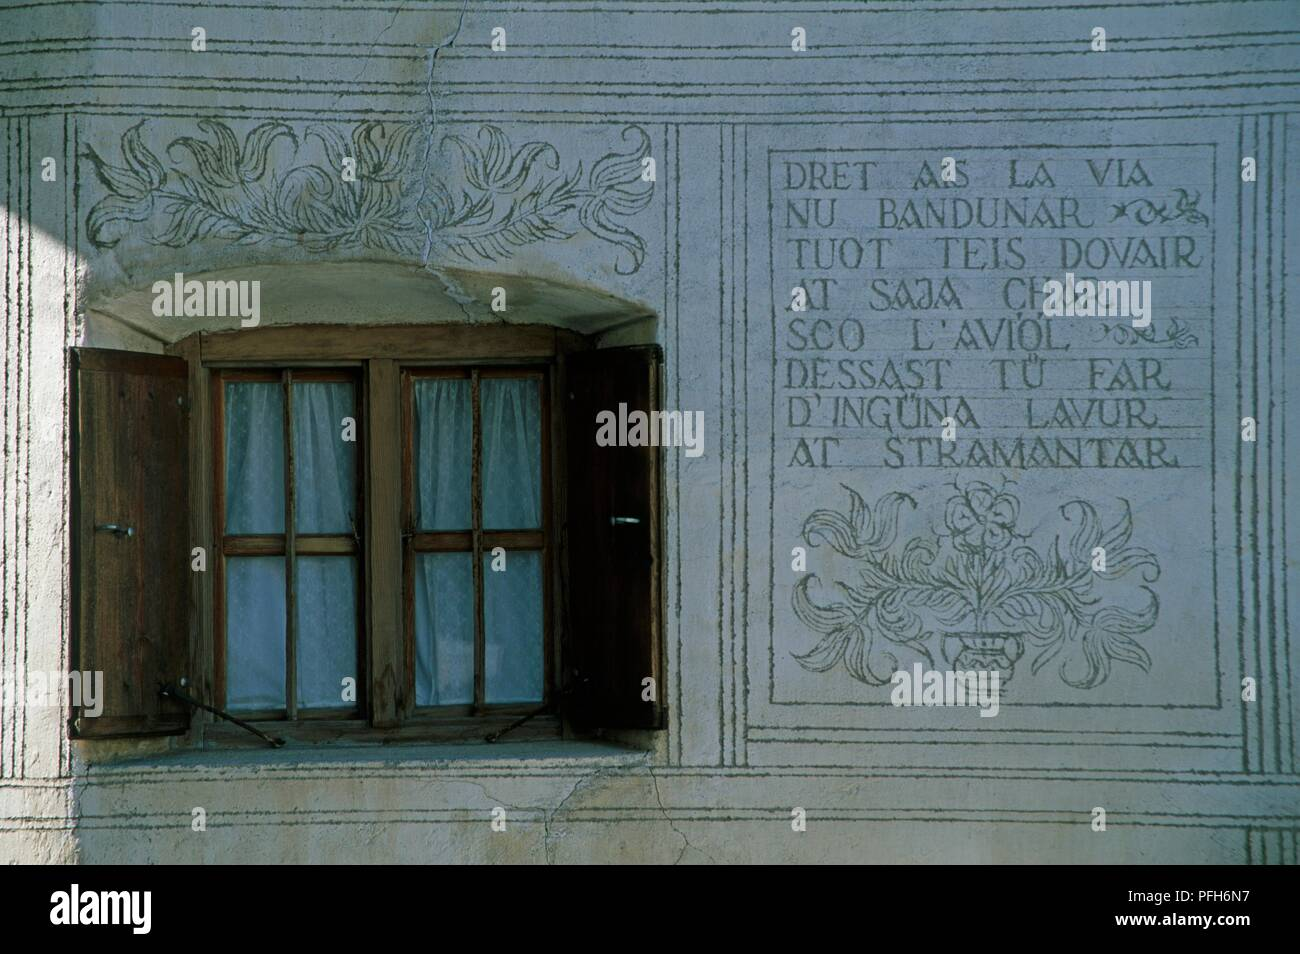 Switzerland, Graubunden Canton, Lower Engadine, Guarda, sgraffito decoration and inscription in Romansh on the facade of a house - Stock Image